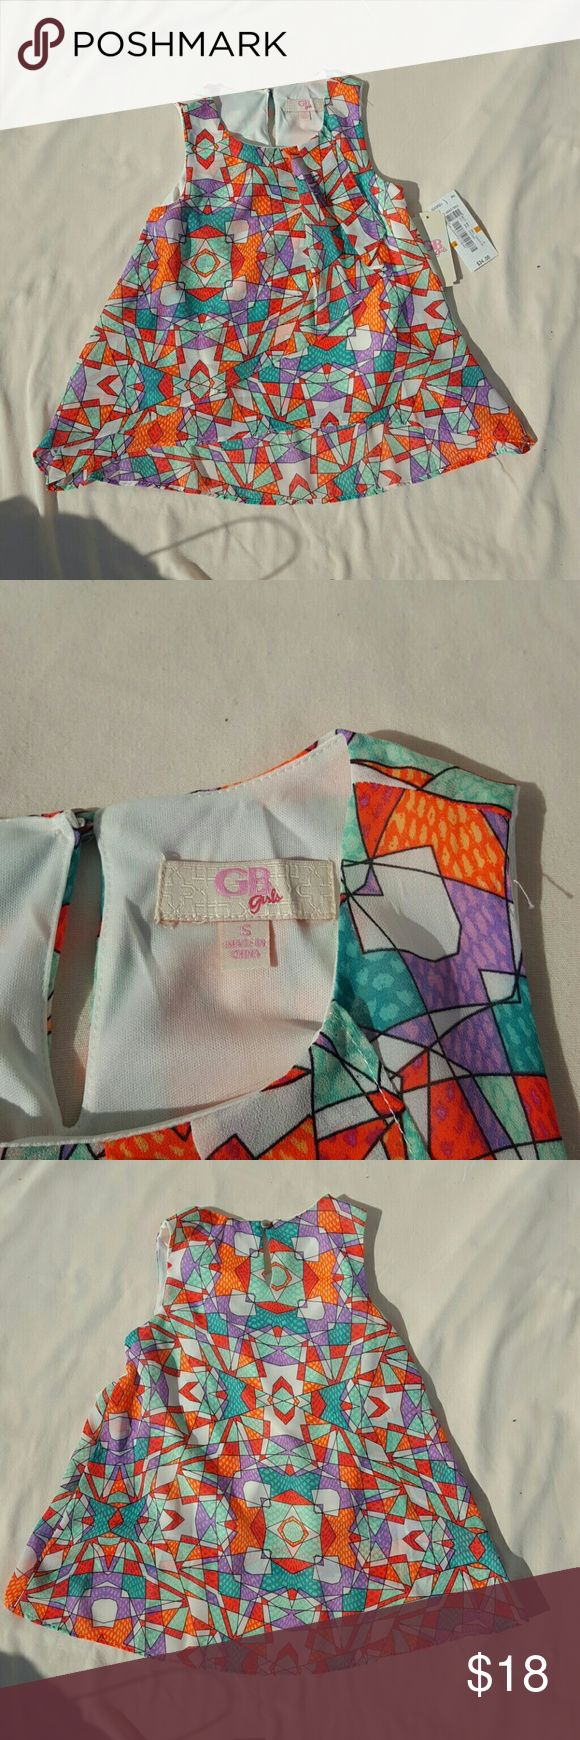 GB girls multi color dress size small NWT flouncy spring dress. 100% polyester. gb Dresses Casual